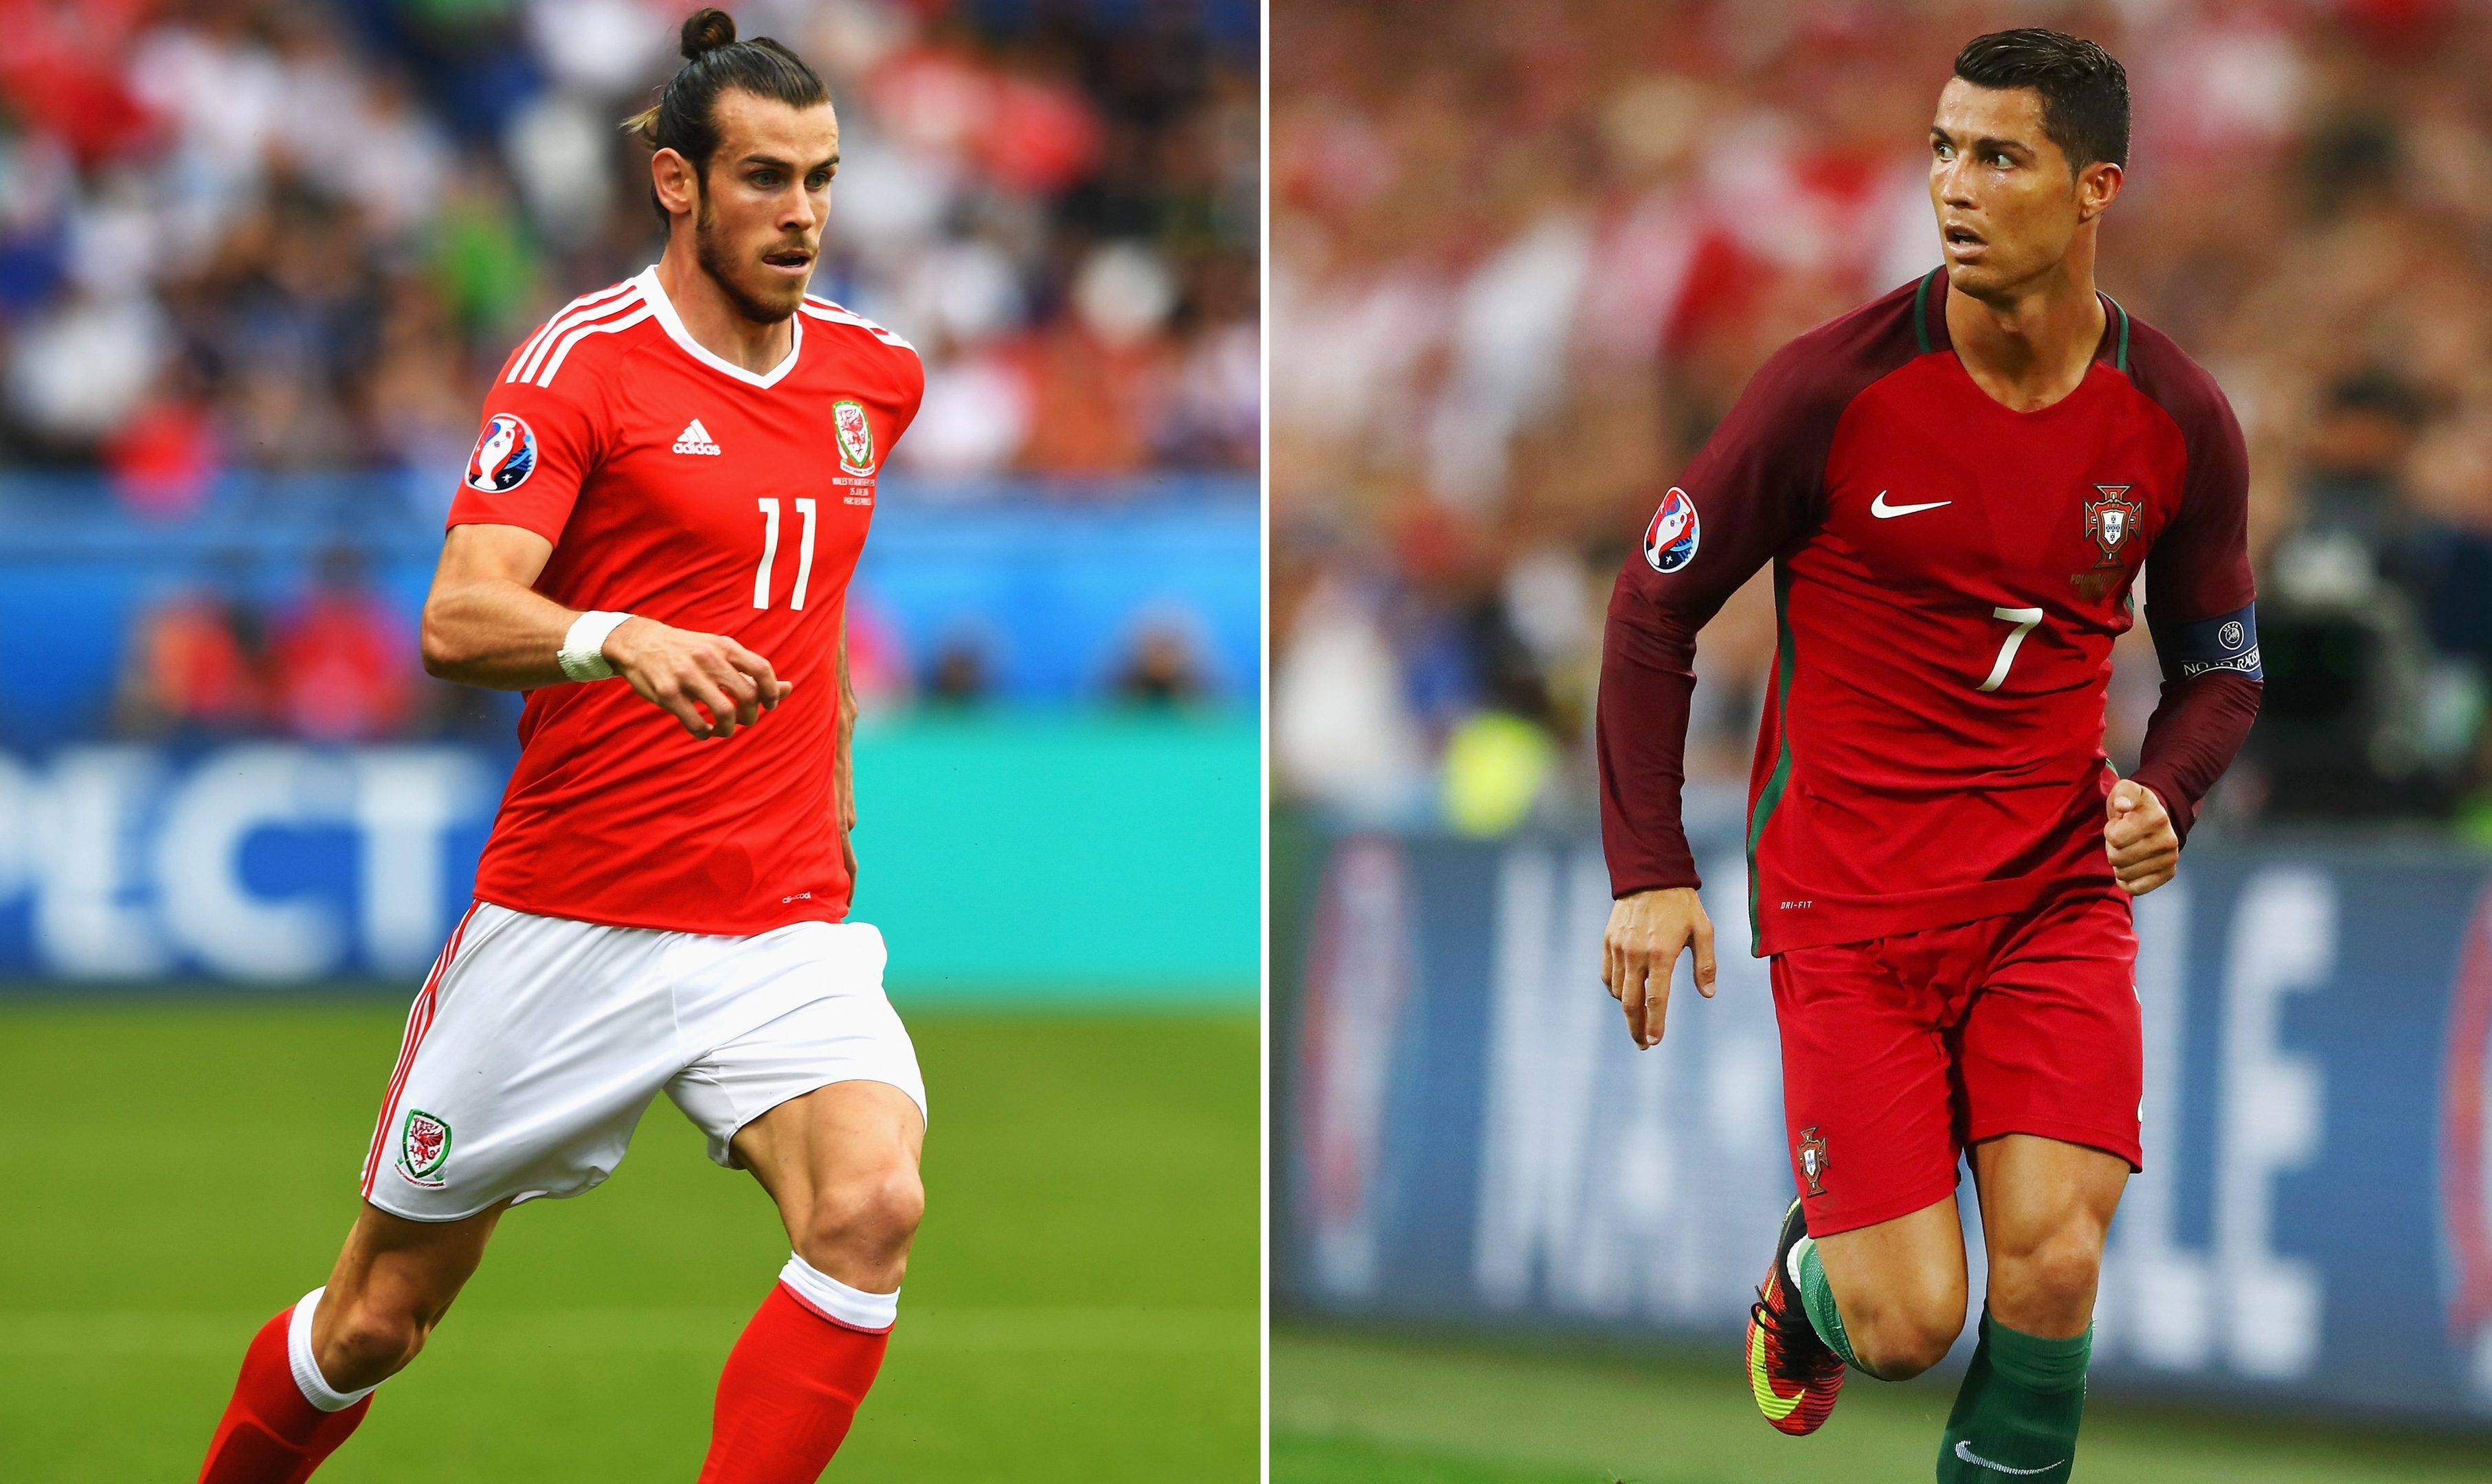 Gareth Bale (L) and Cristiano Ronaldo (Lars Baron/Getty Images)